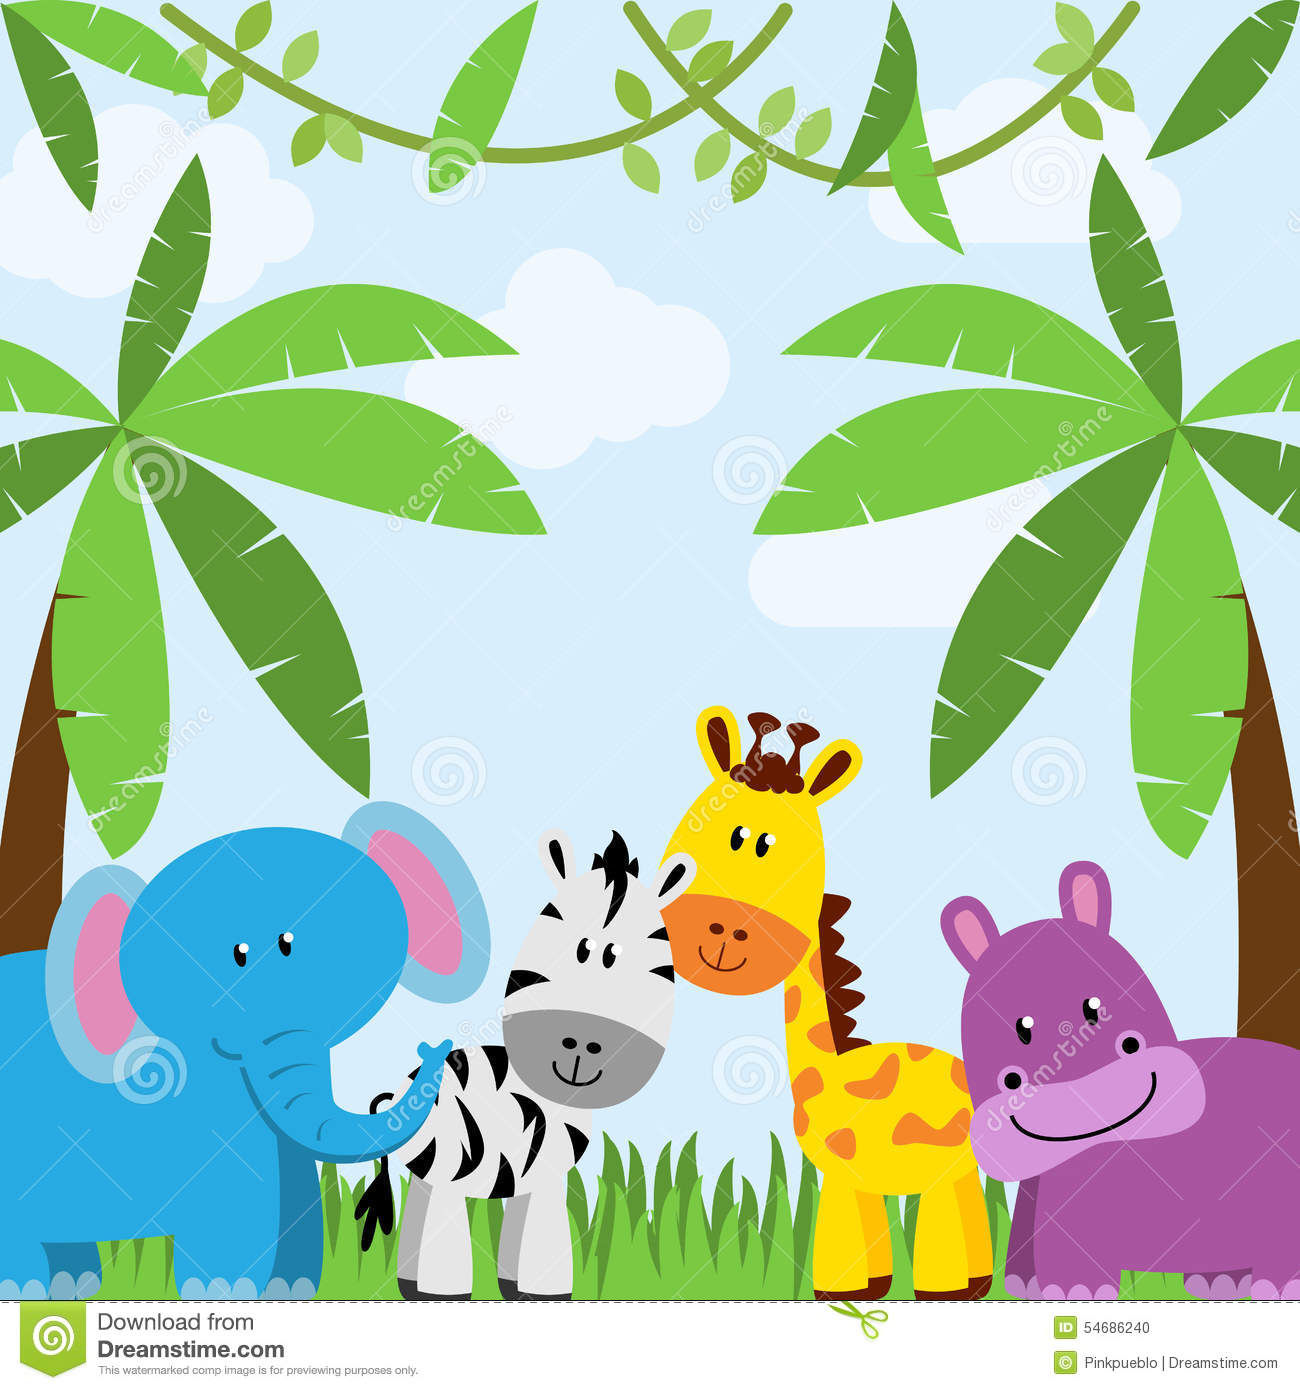 Zoo theme clipart background.